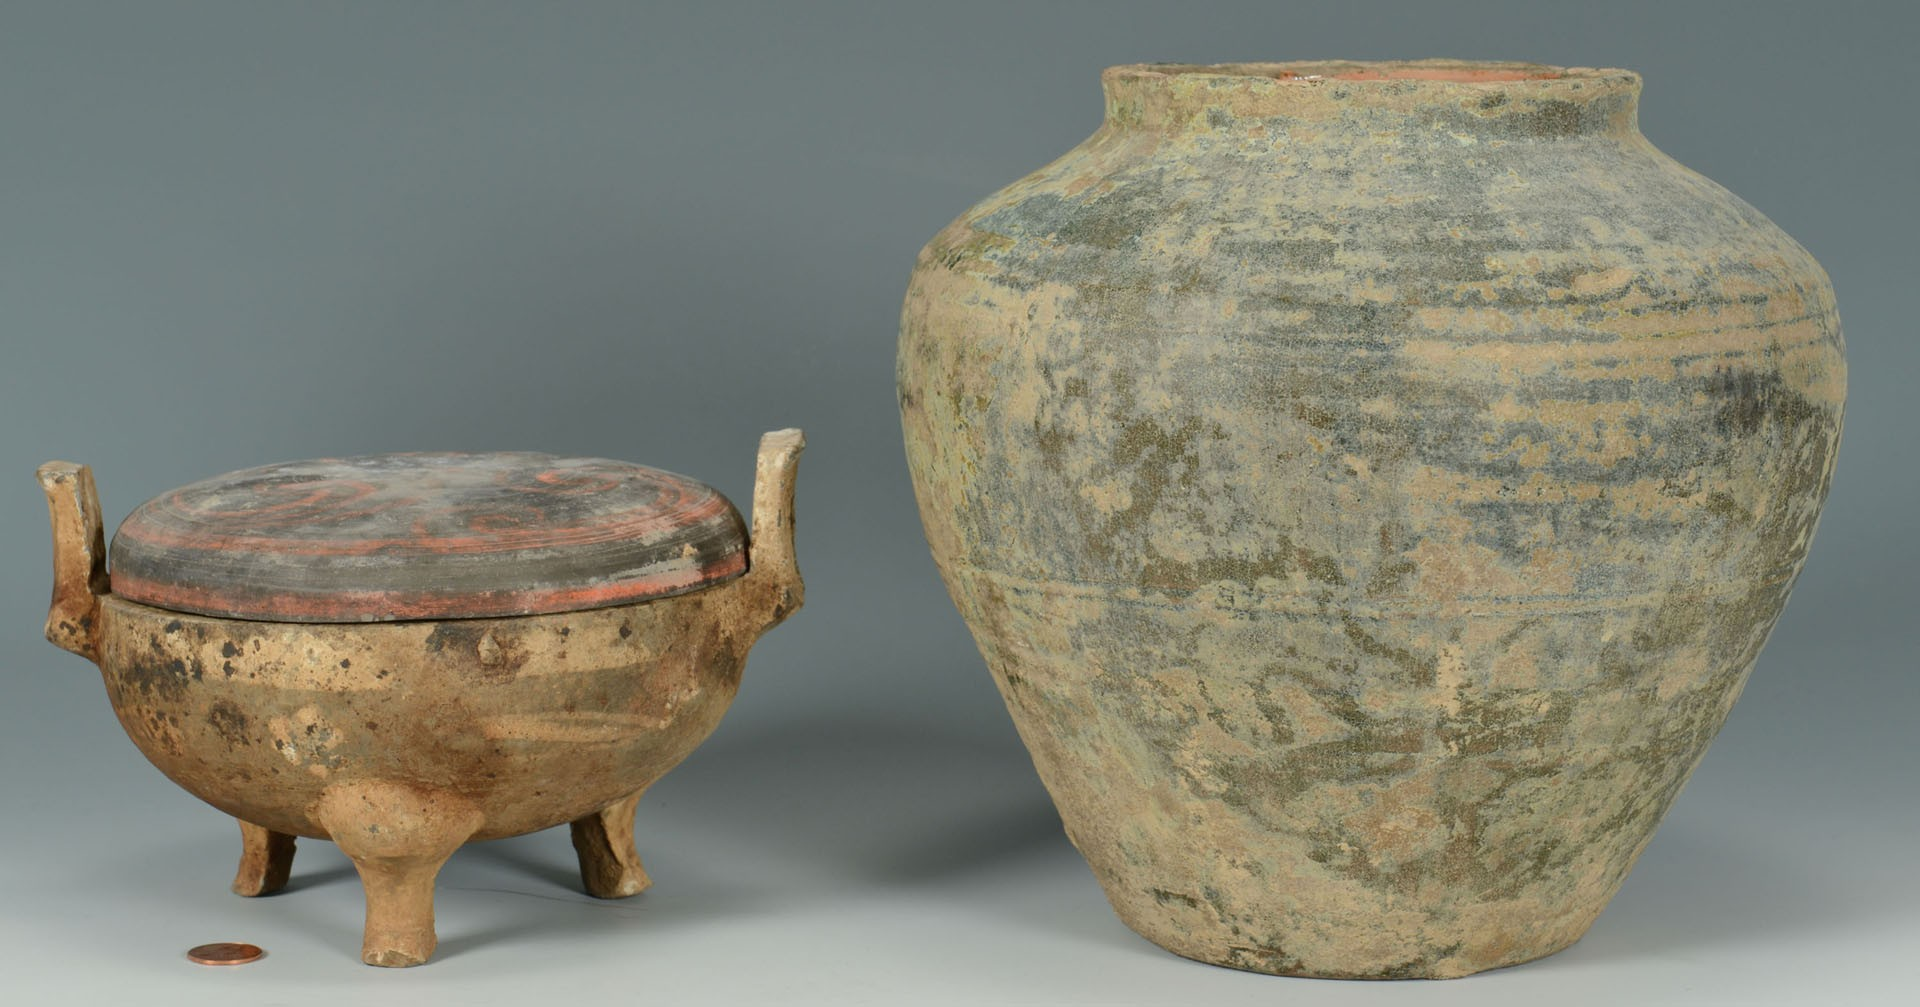 Lot 3383253: 2 Chinese Han Dynasty Style Pottery Vessels